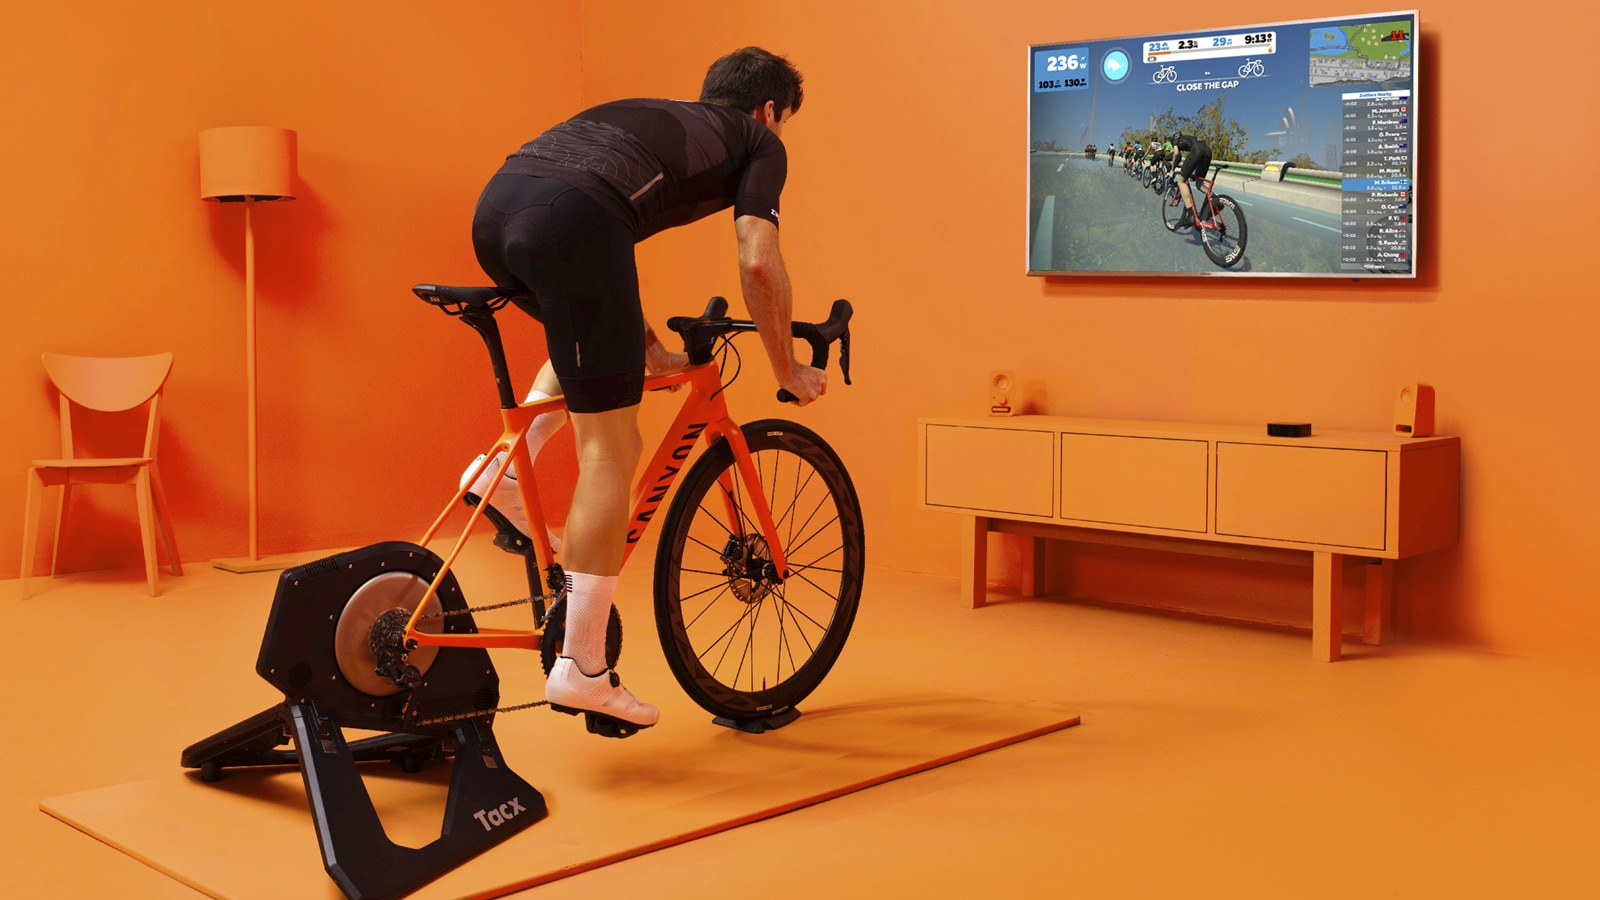 A man on a bike watching a TV in an orange room, representing Further's online qual research work with Zwift.